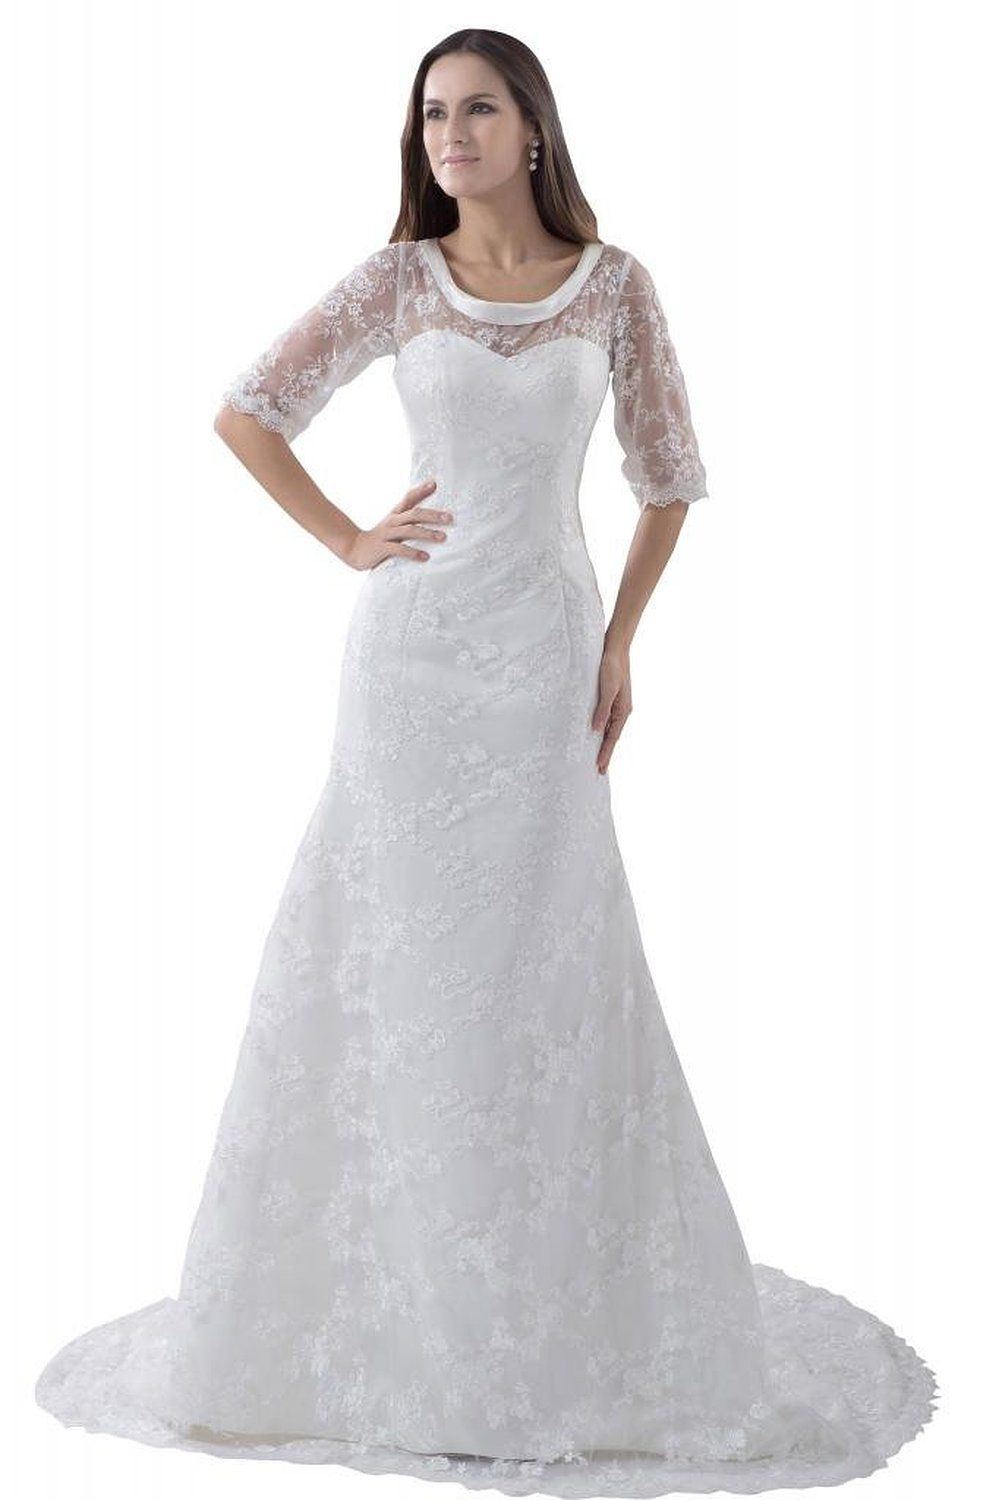 George bride elegant half sleeves lace over satin wedding dress with